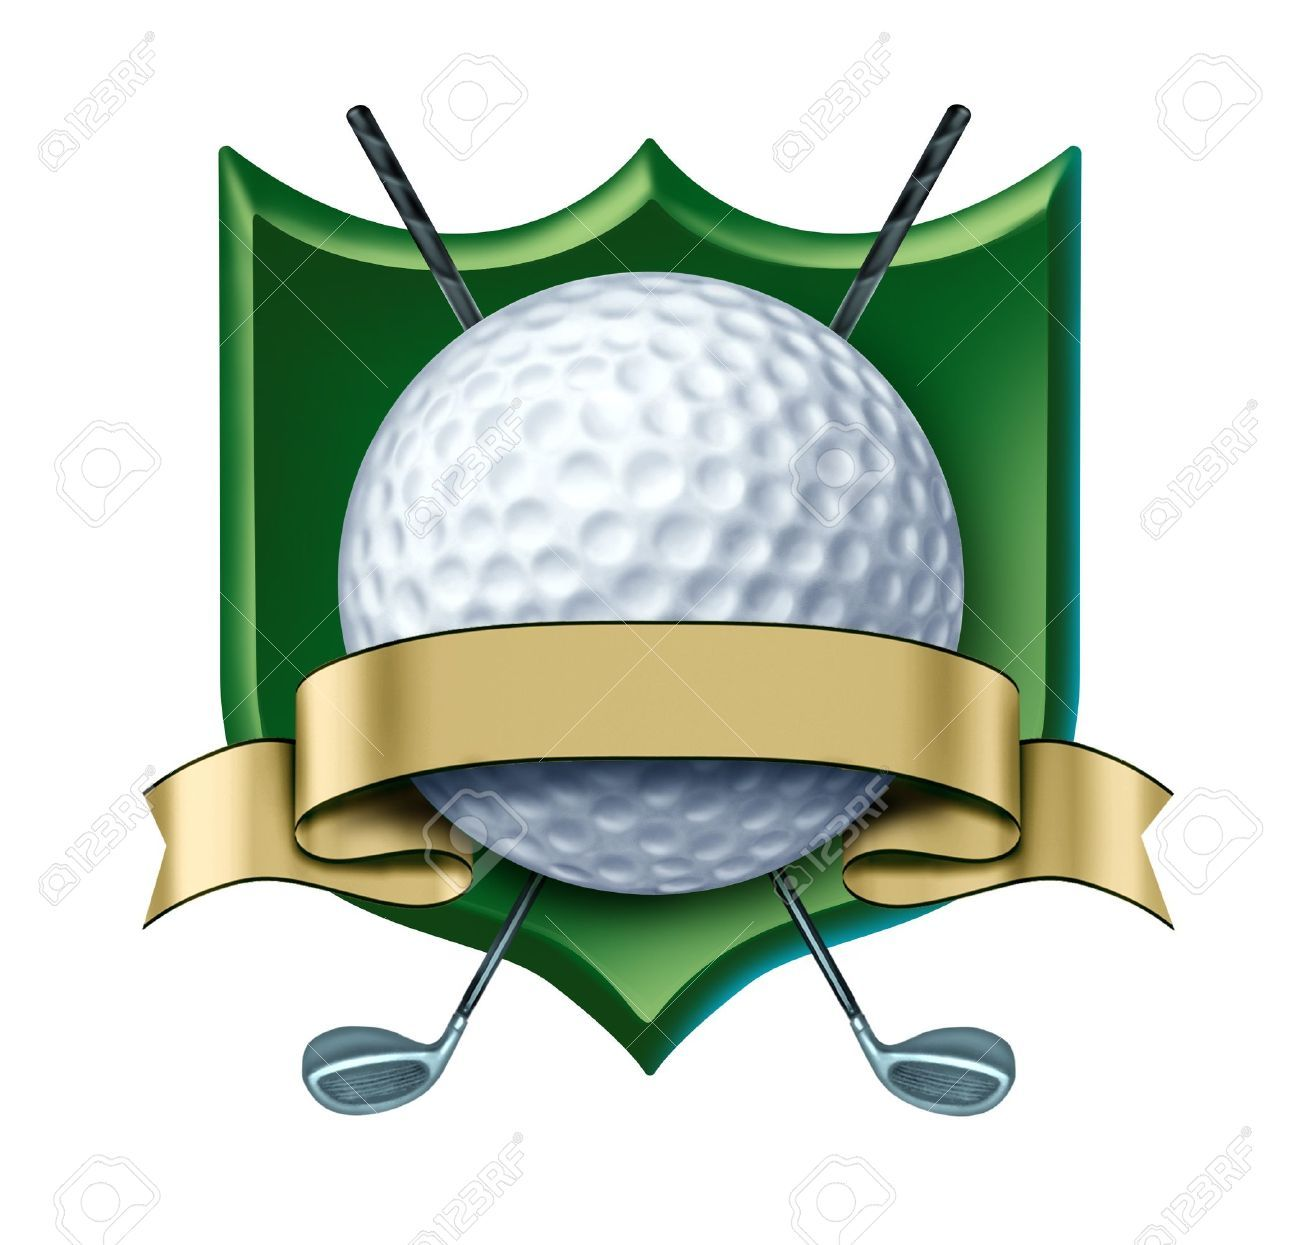 Related image tournament images. Golf clipart award